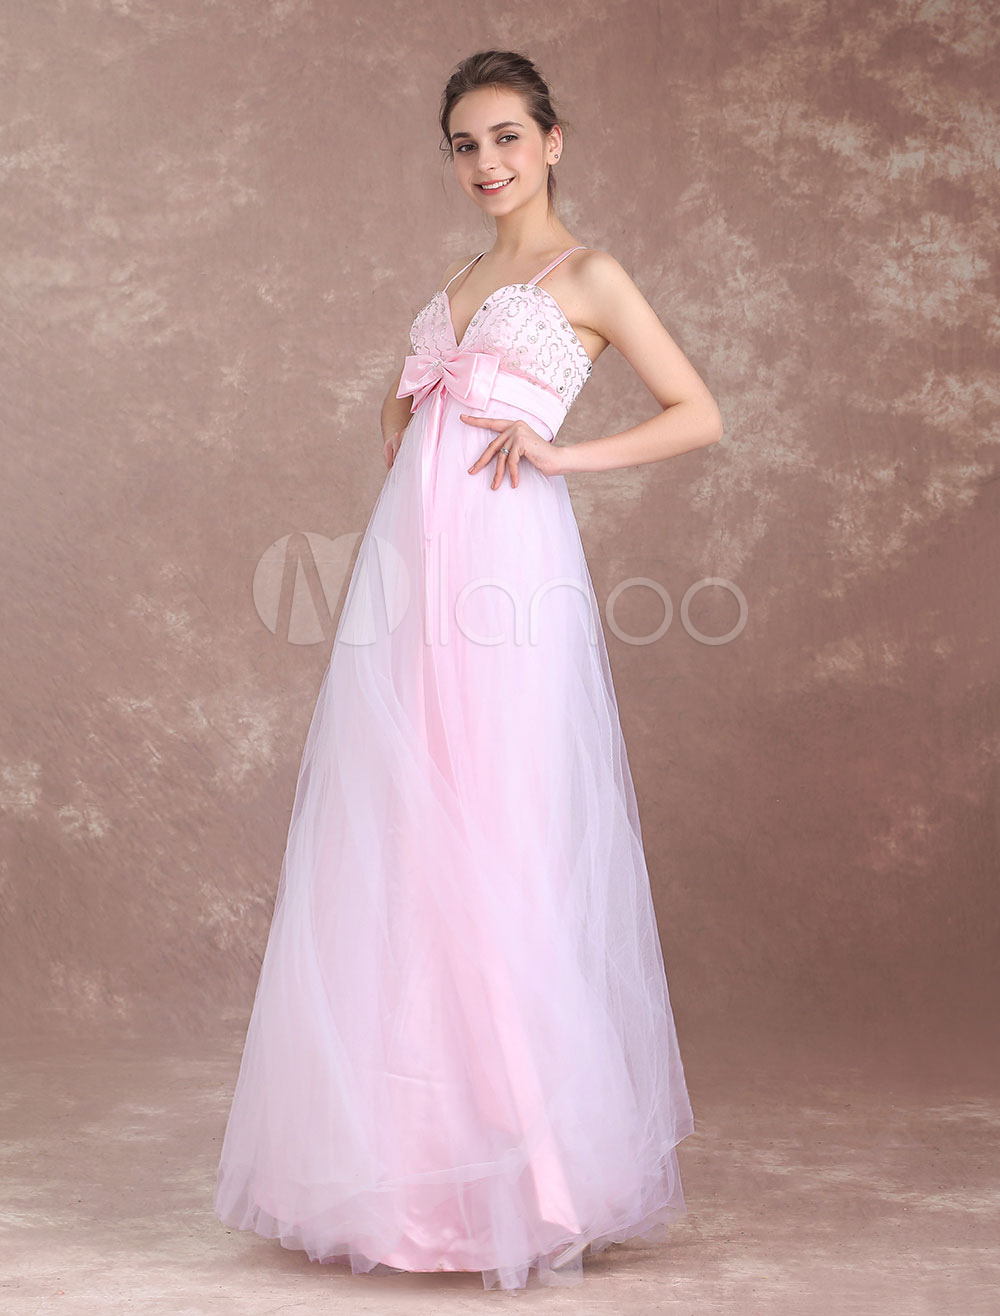 8aaaa96567b453 Prom Dresses Long Soft Pink Spaghetti Straps Empire Waist Backless Beading  Tulle Ribbon Bow Sash Floor Length Formal Party Dress